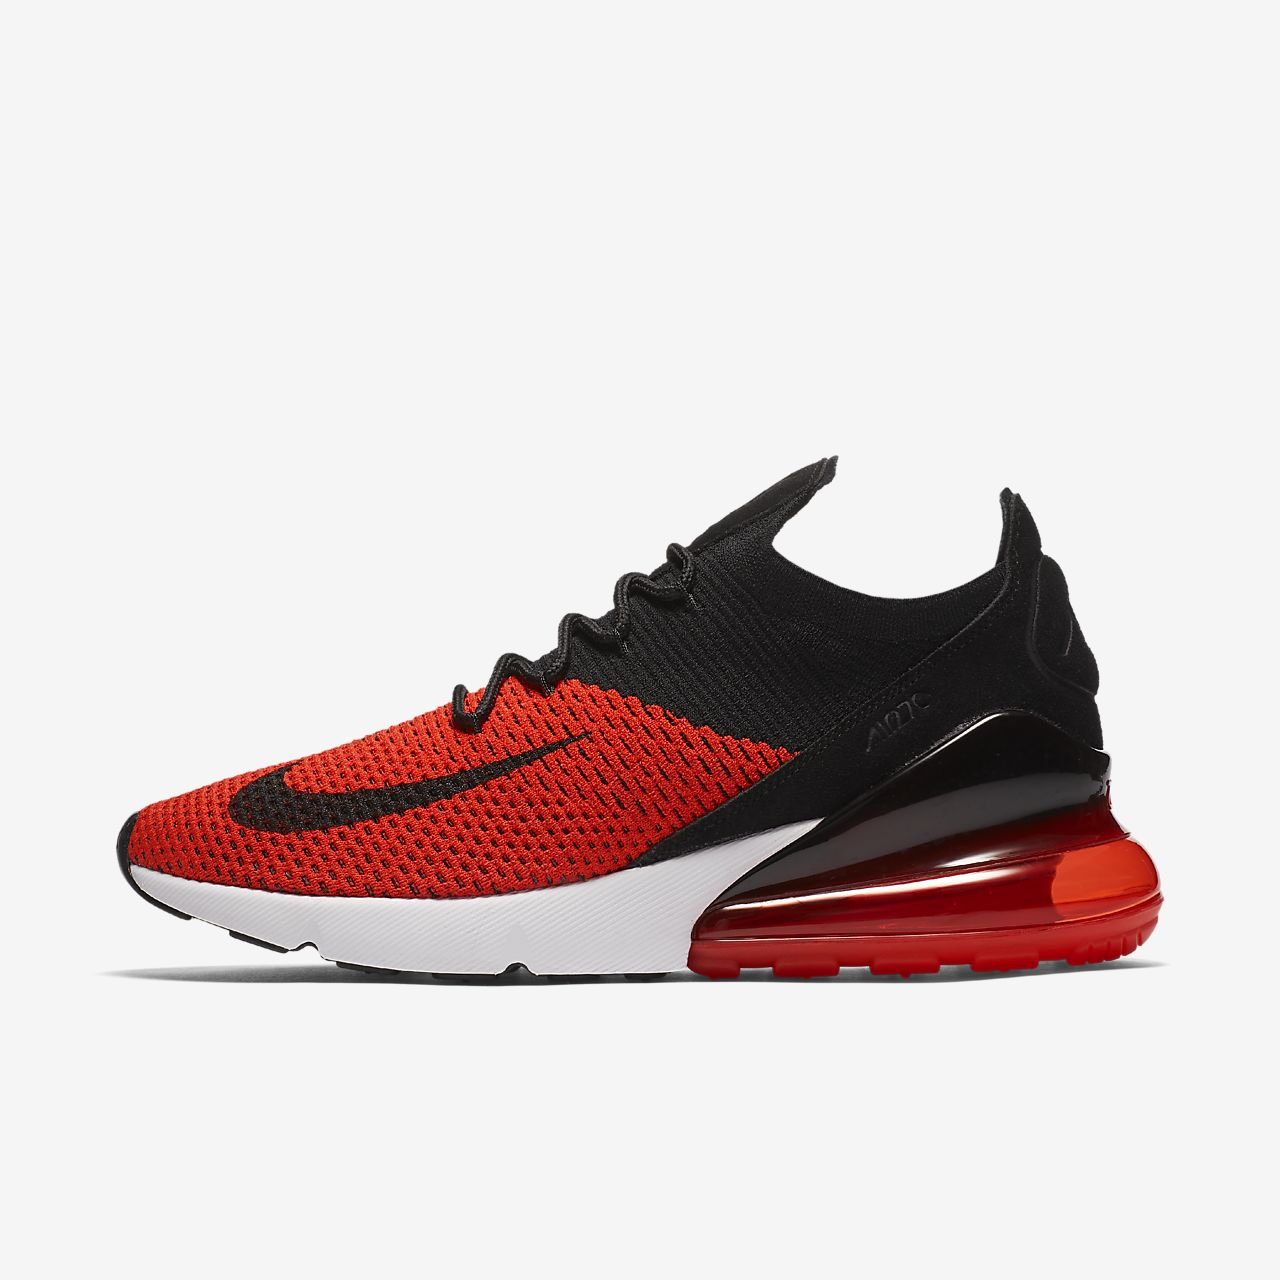 8621361a1c433 Nike Air Max 270 Flyknit Men s Shoe. Nike.com